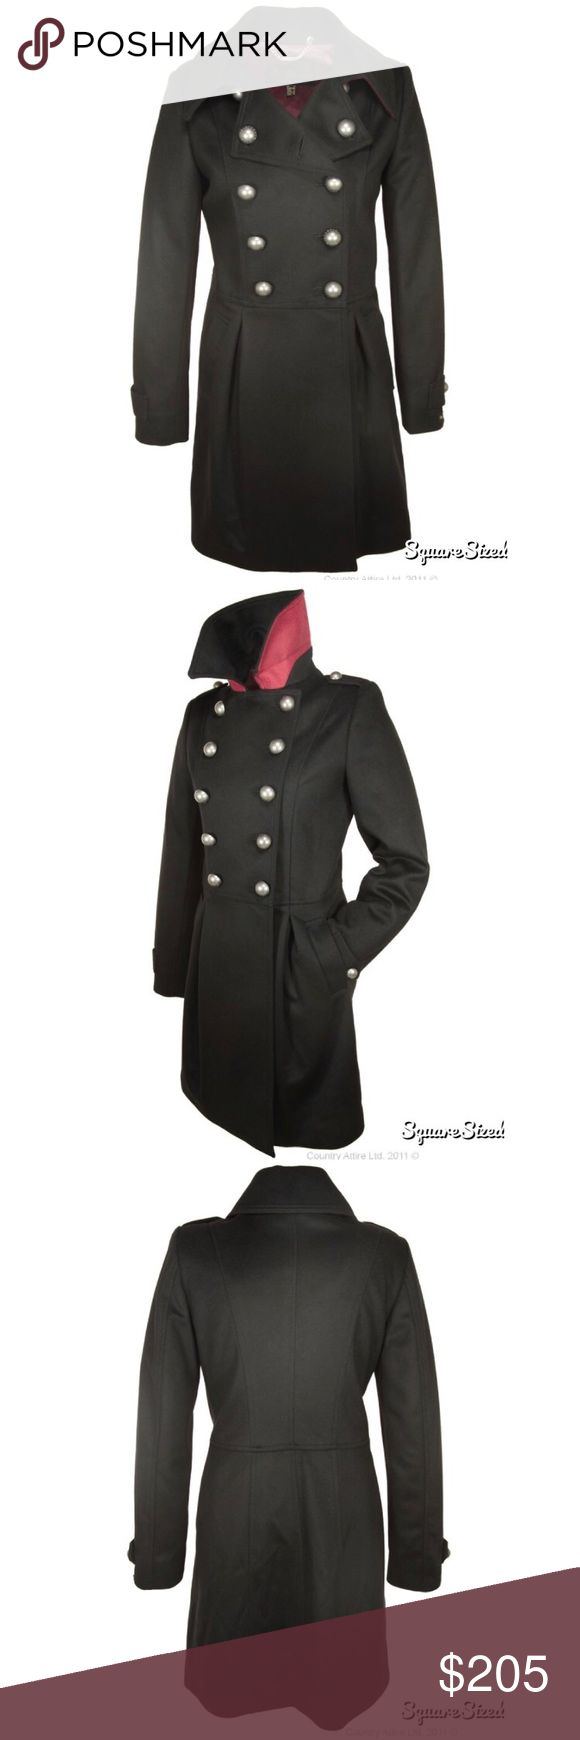 NWT Barbour Ladies Fusilier Coat in Black NWT Barbour Ladies' Fusilier Coat  This is a beautiful Ladies' Coat with a high waist and tulip silhouette which is very flattering. The Barbour branded dome buttons add lovely detailing and the red under collar provides a flash of colour to this classic black coat.  - 60% wool, 20% cashmere, 20% polyamide outer - 50% polyester, 50% viscose lining - Dry clean only - Back length: 34.5-37ins | 88-94cm Barbour Jackets & Coats Pea Coats